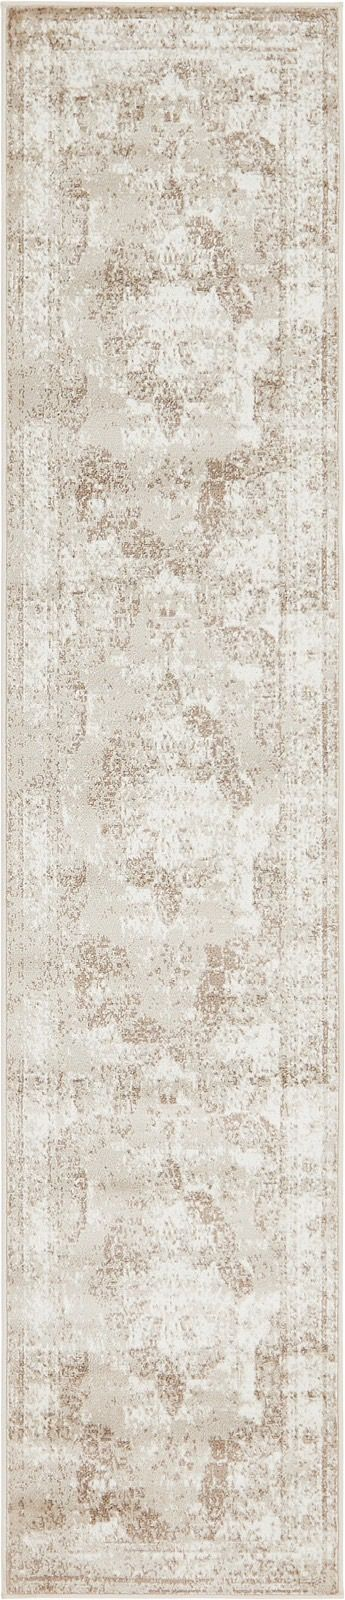 rugpal sandrine transitional area rug collection